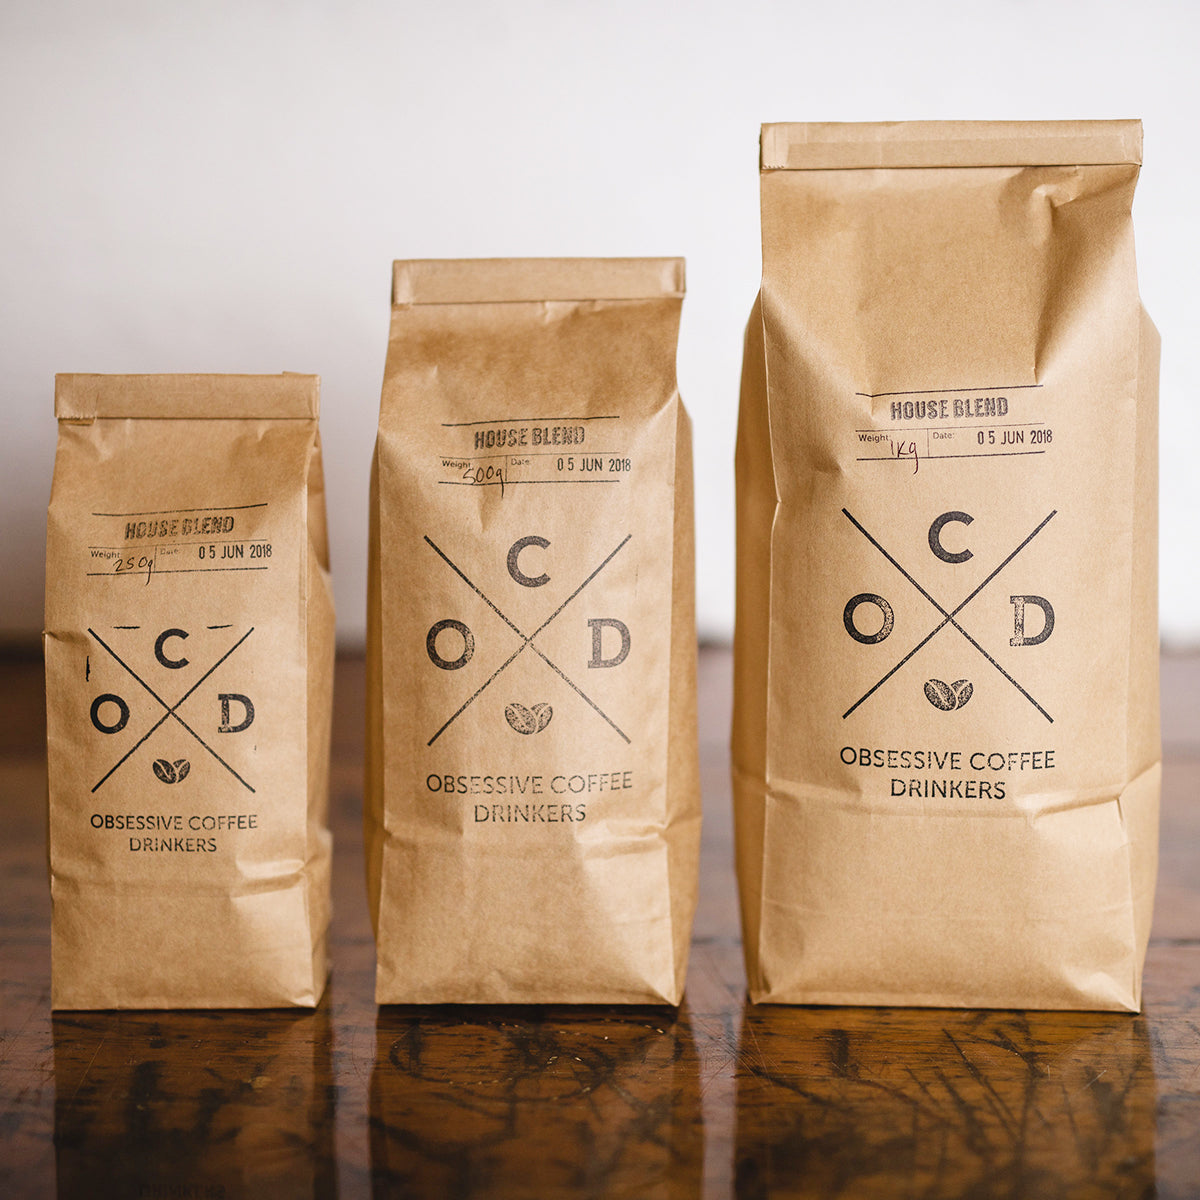 House Blend - OCD Coffee Bay of Plenty NZ